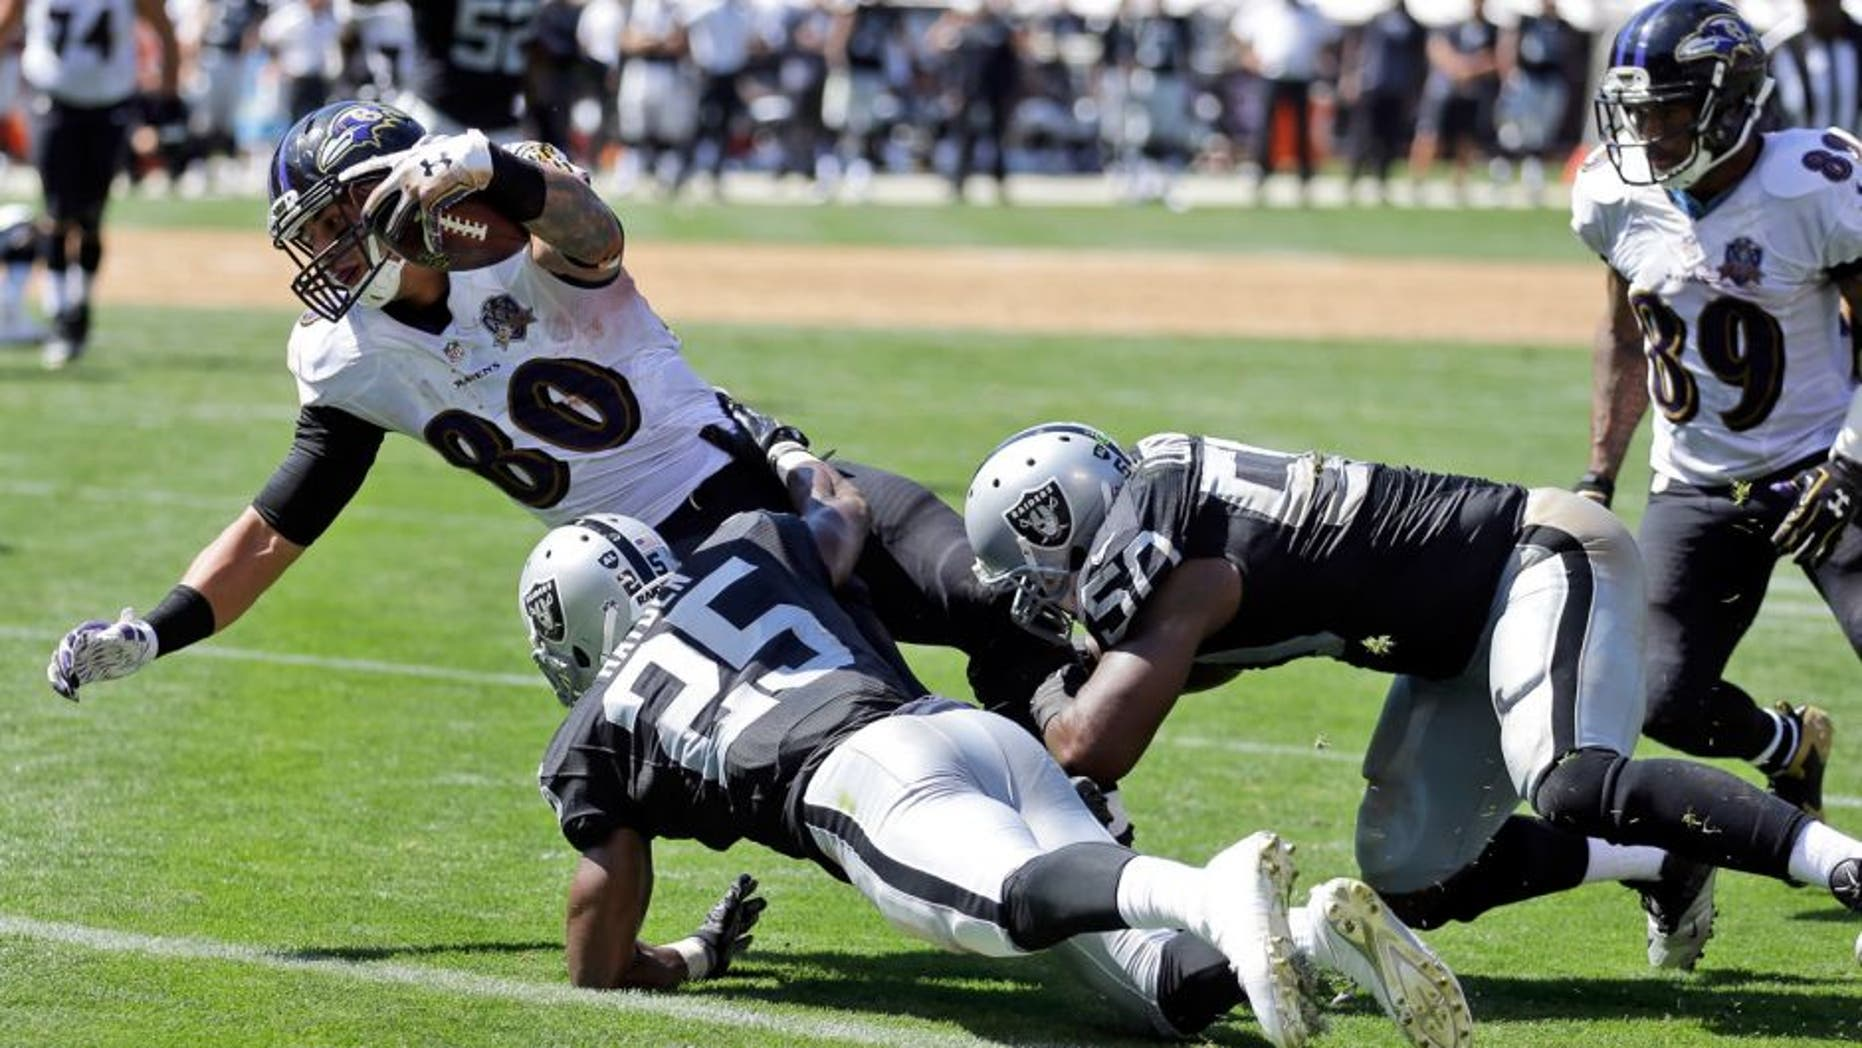 Baltimore Ravens' Crockett Gillmore (80) scores on a 9-yard reception during an NFL football game against the Oakland Raiders, Sunday, Sept. 20, 2015, in Oakland , Calif. (AP Photo/Ben Margot)